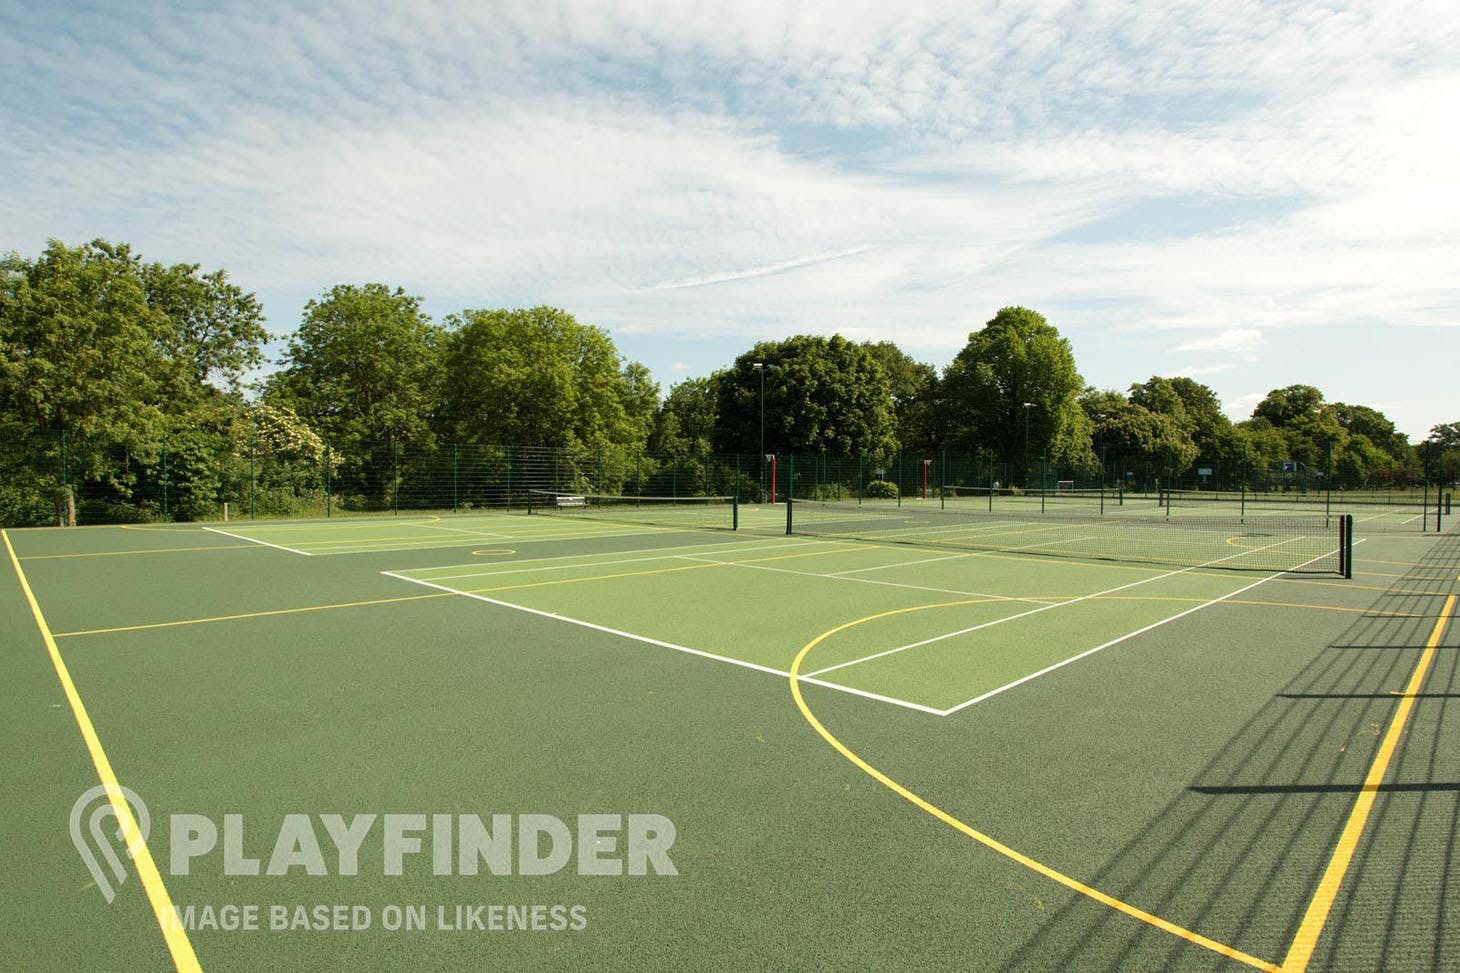 Castle Hill Community Centre Outdoor | Hard (macadam) tennis court